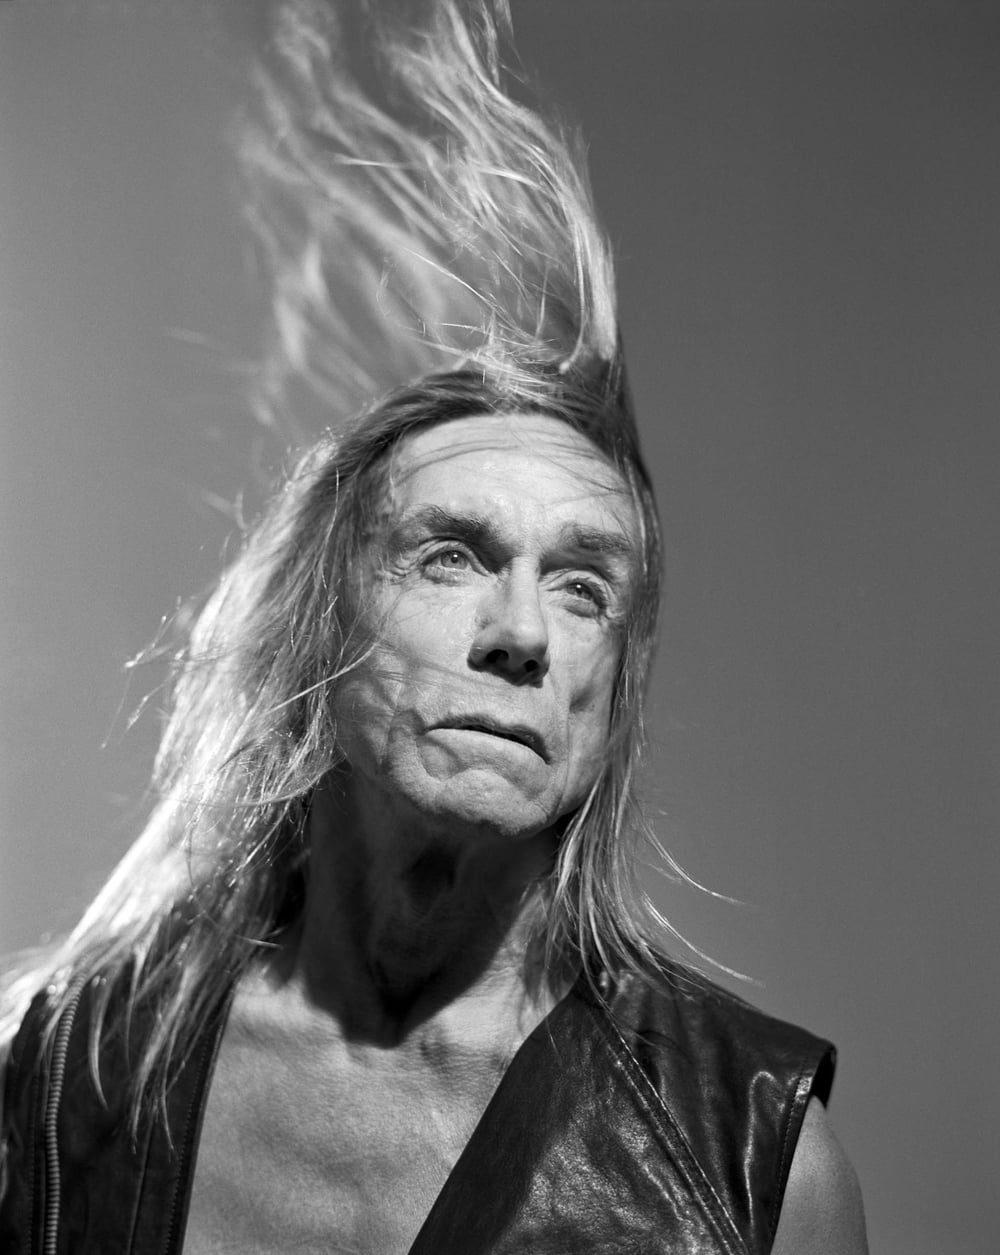 image-208Iggy-Pop-musician-and-Detroits-biggest-fan-Miami-2008.jpg